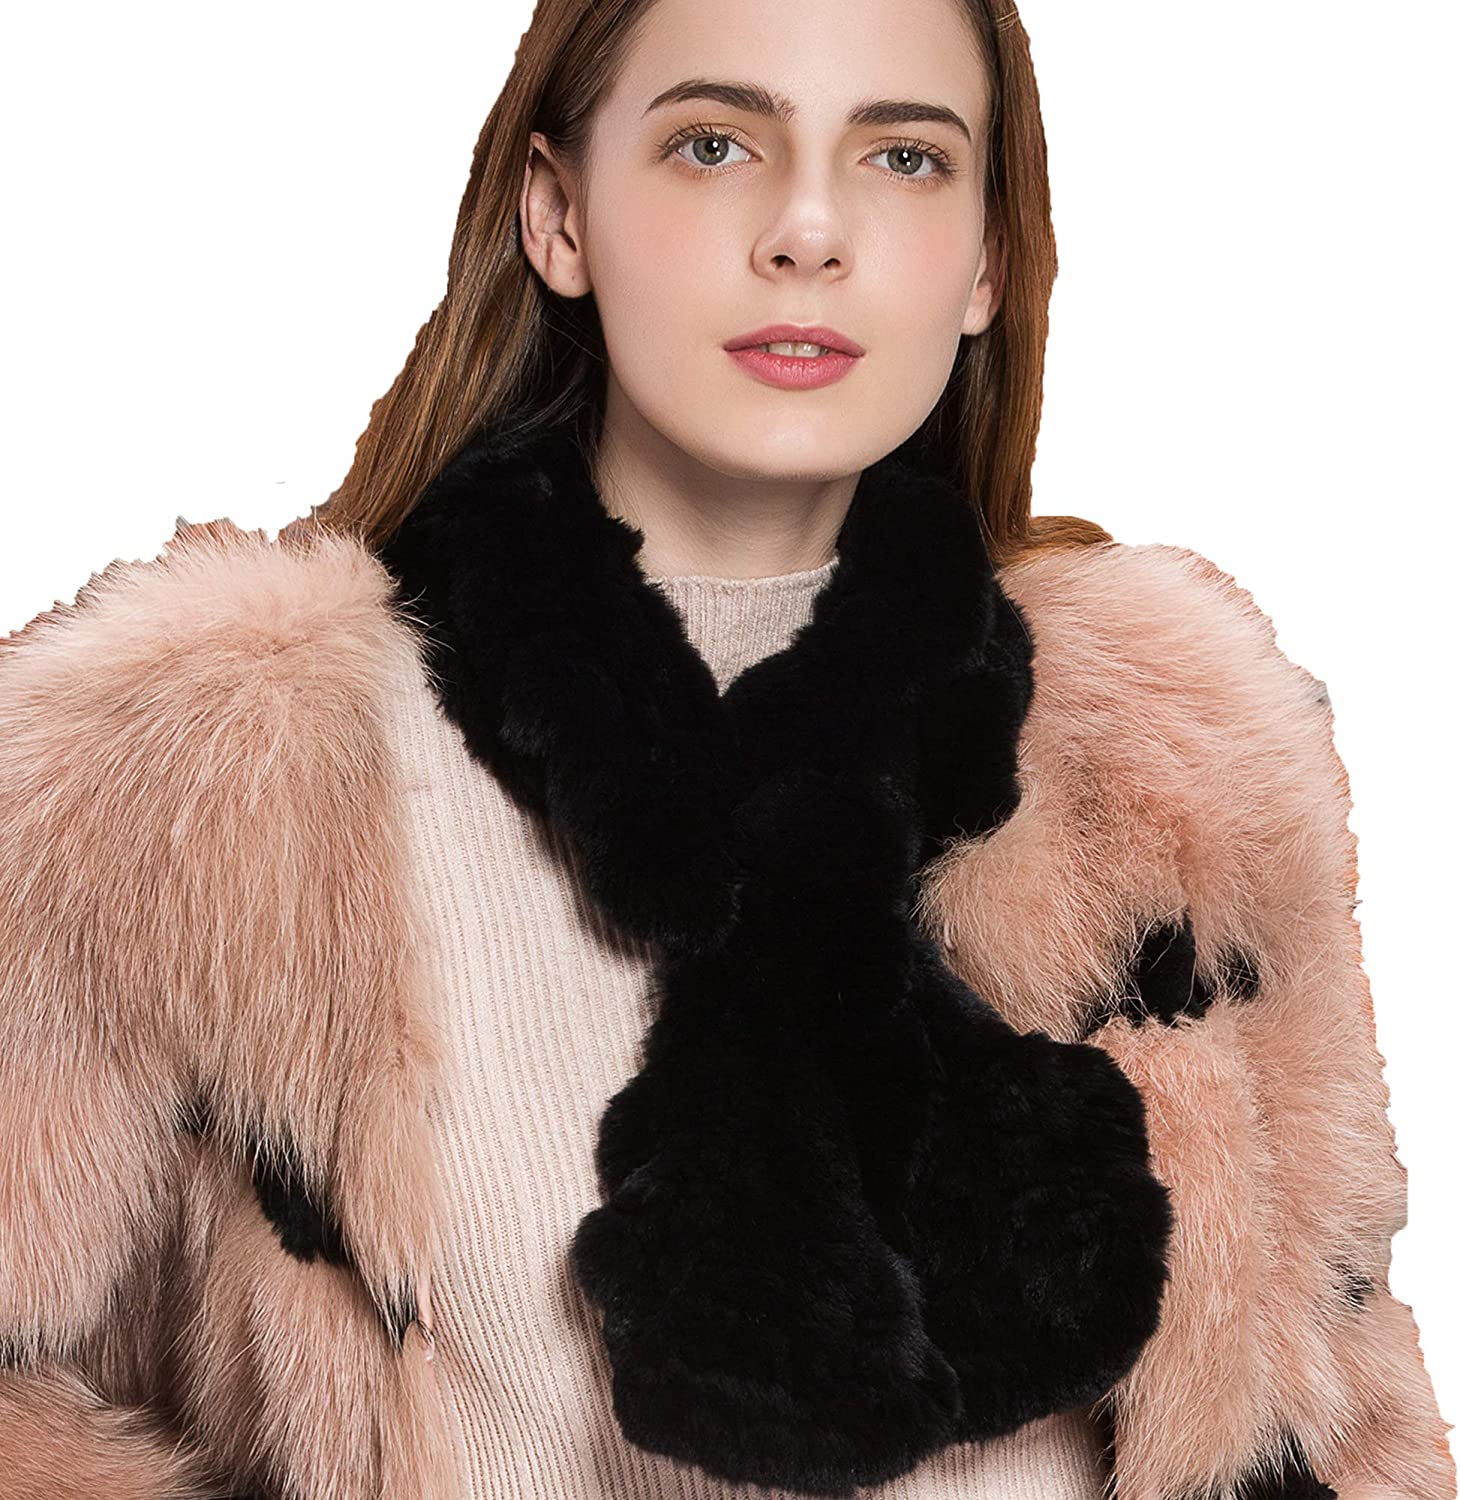 YISEVEN Women's Warm Winter Soft Real Rabbit Fur knitted Collar Stole Shawl Thick Scarf pink Design